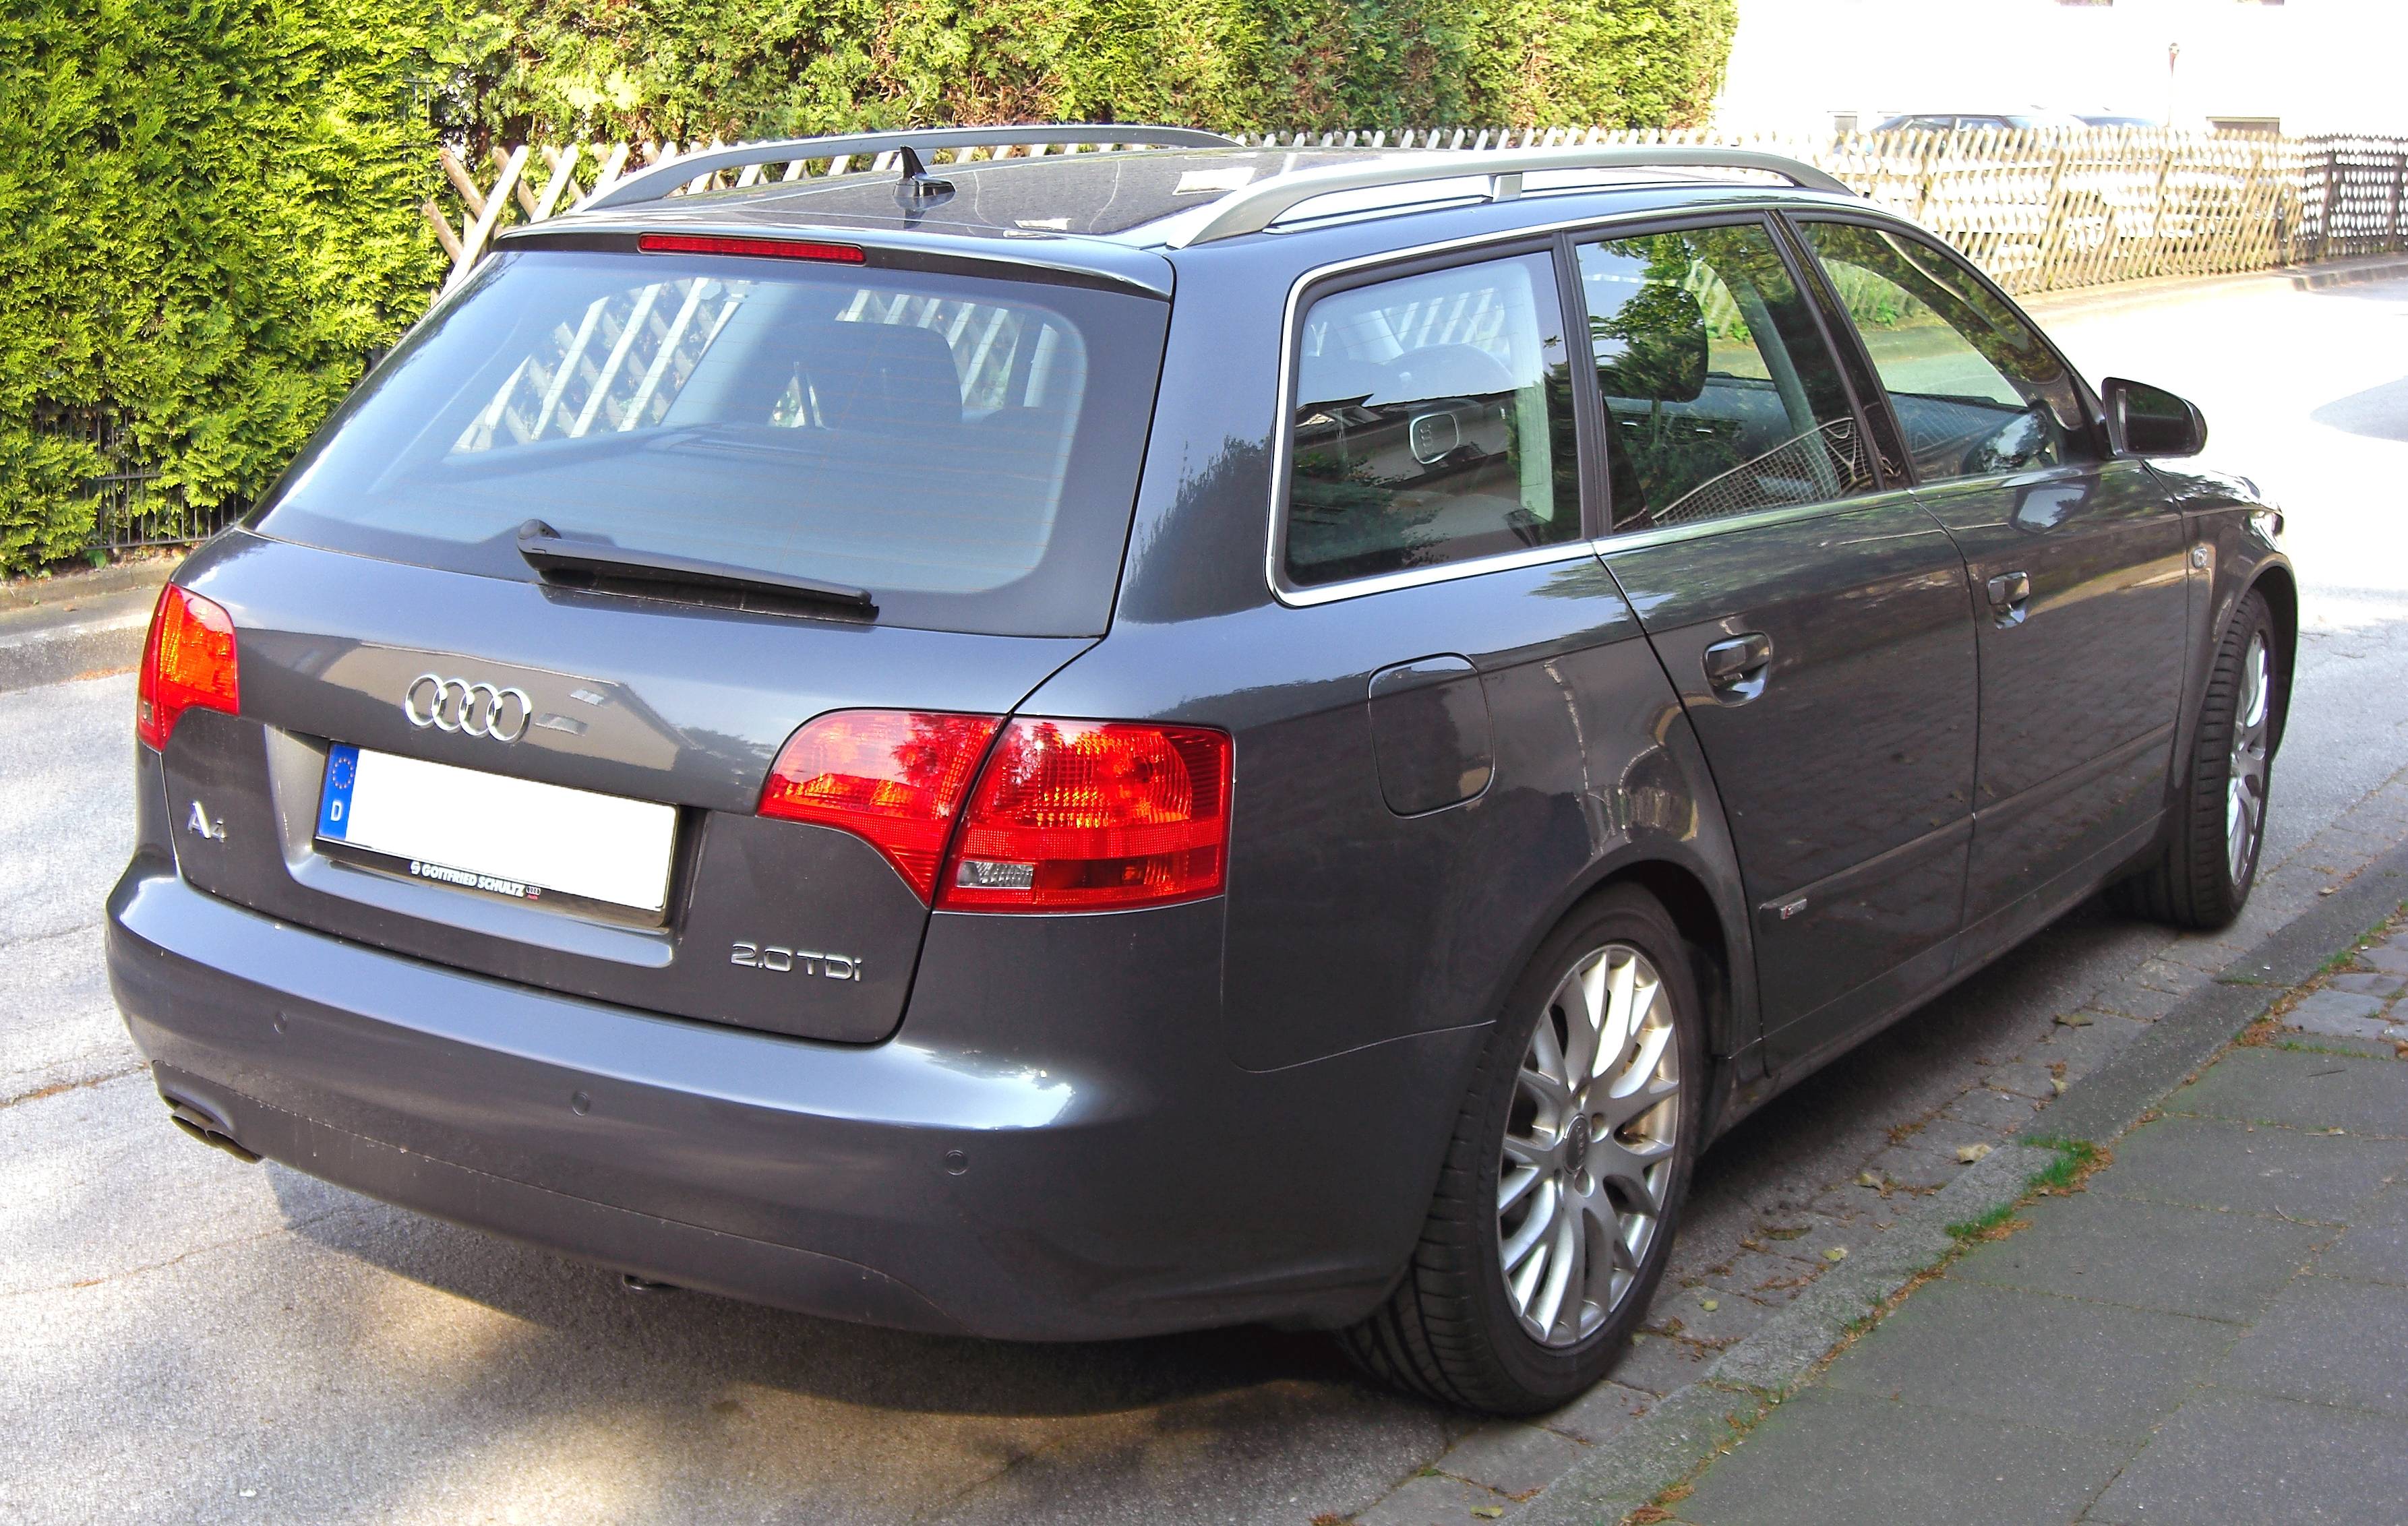 File:Audi A4 B7 Avant 20090424 rear.jpg - Wikimedia Commons